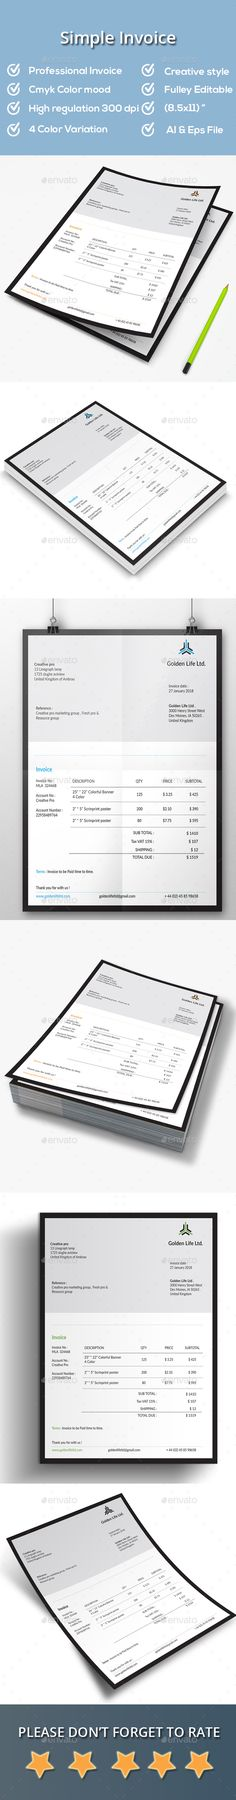 Invoice Cartoleria, Colori e Parole - simple invoice